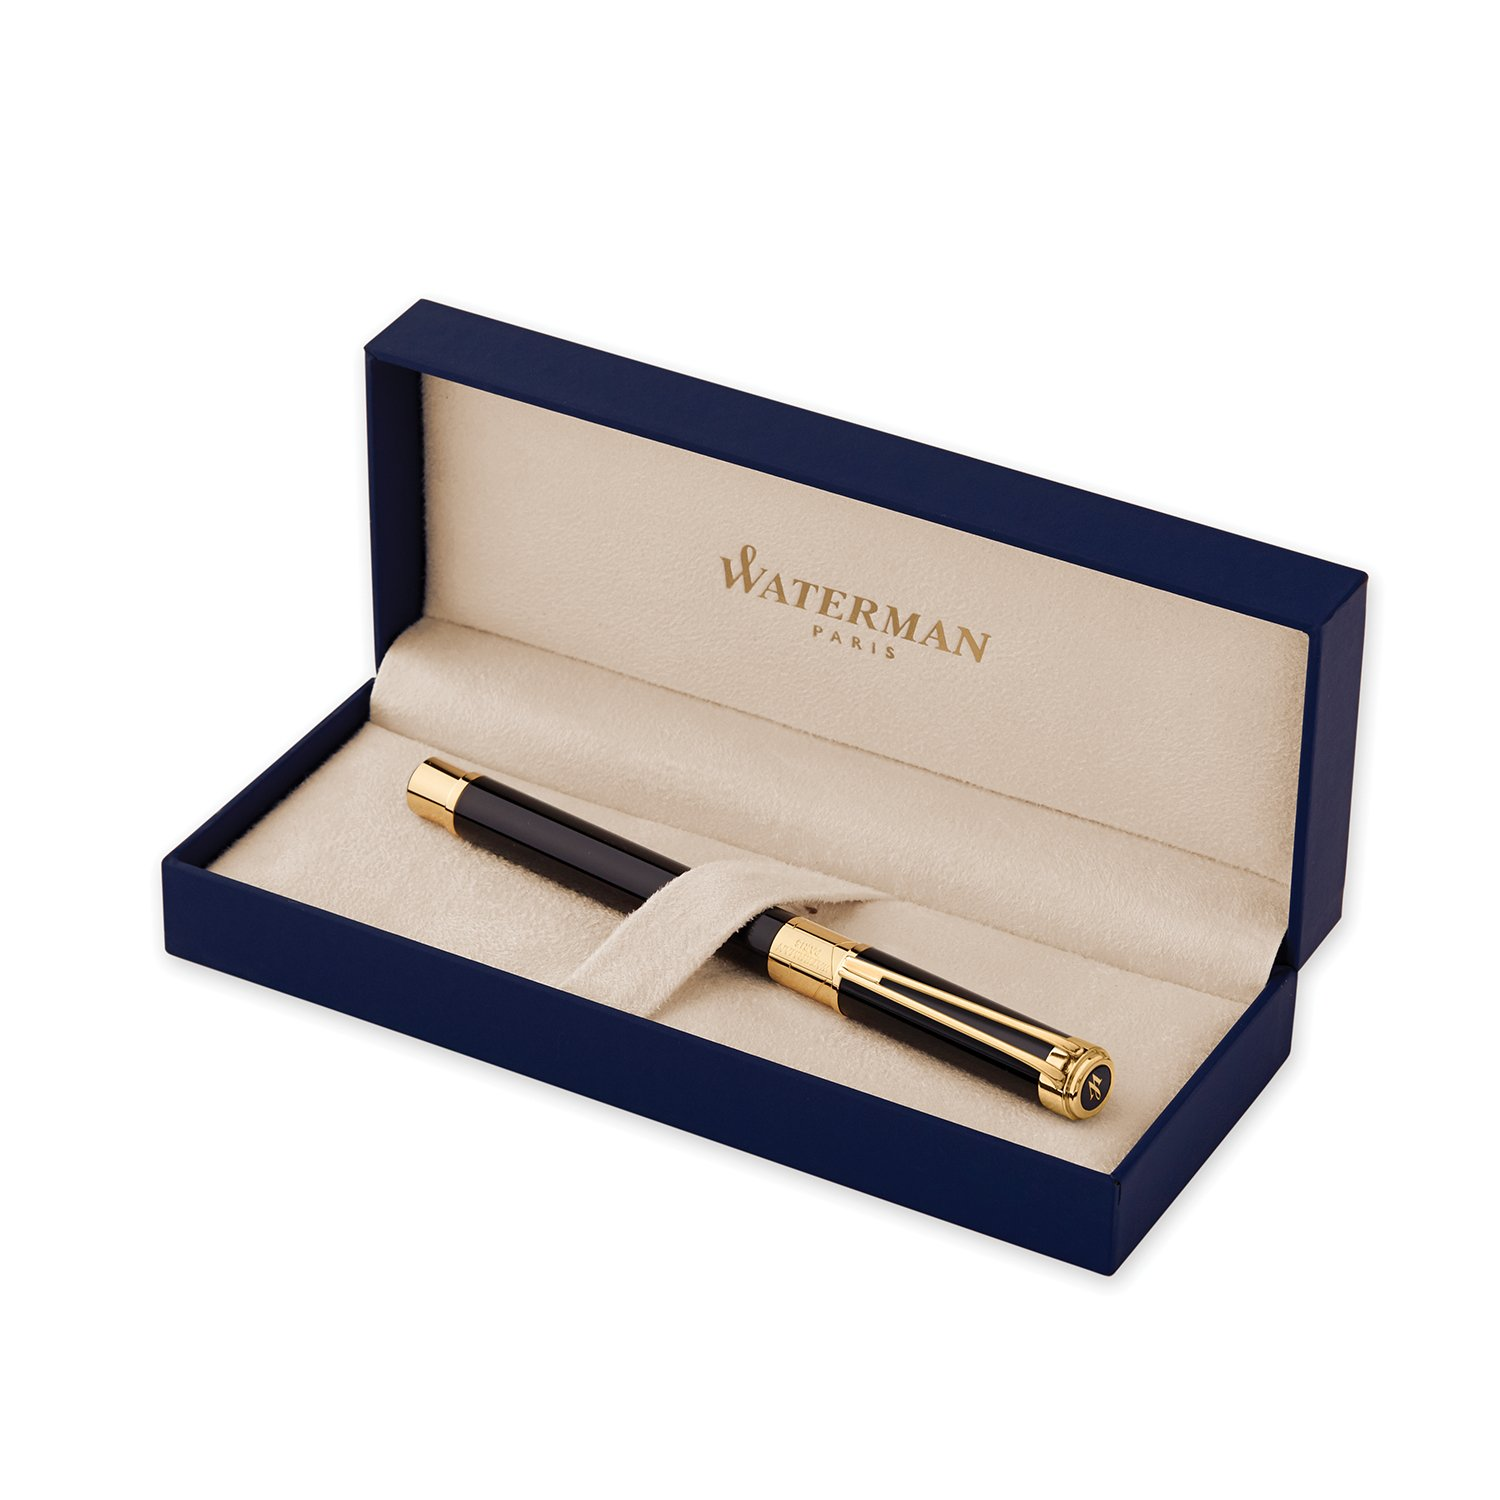 Waterman Perspective Fountain Pen, Gloss Black with 23k Gold Clip, Fine Nib with Blue Ink Cartridge, Gift Box by Waterman